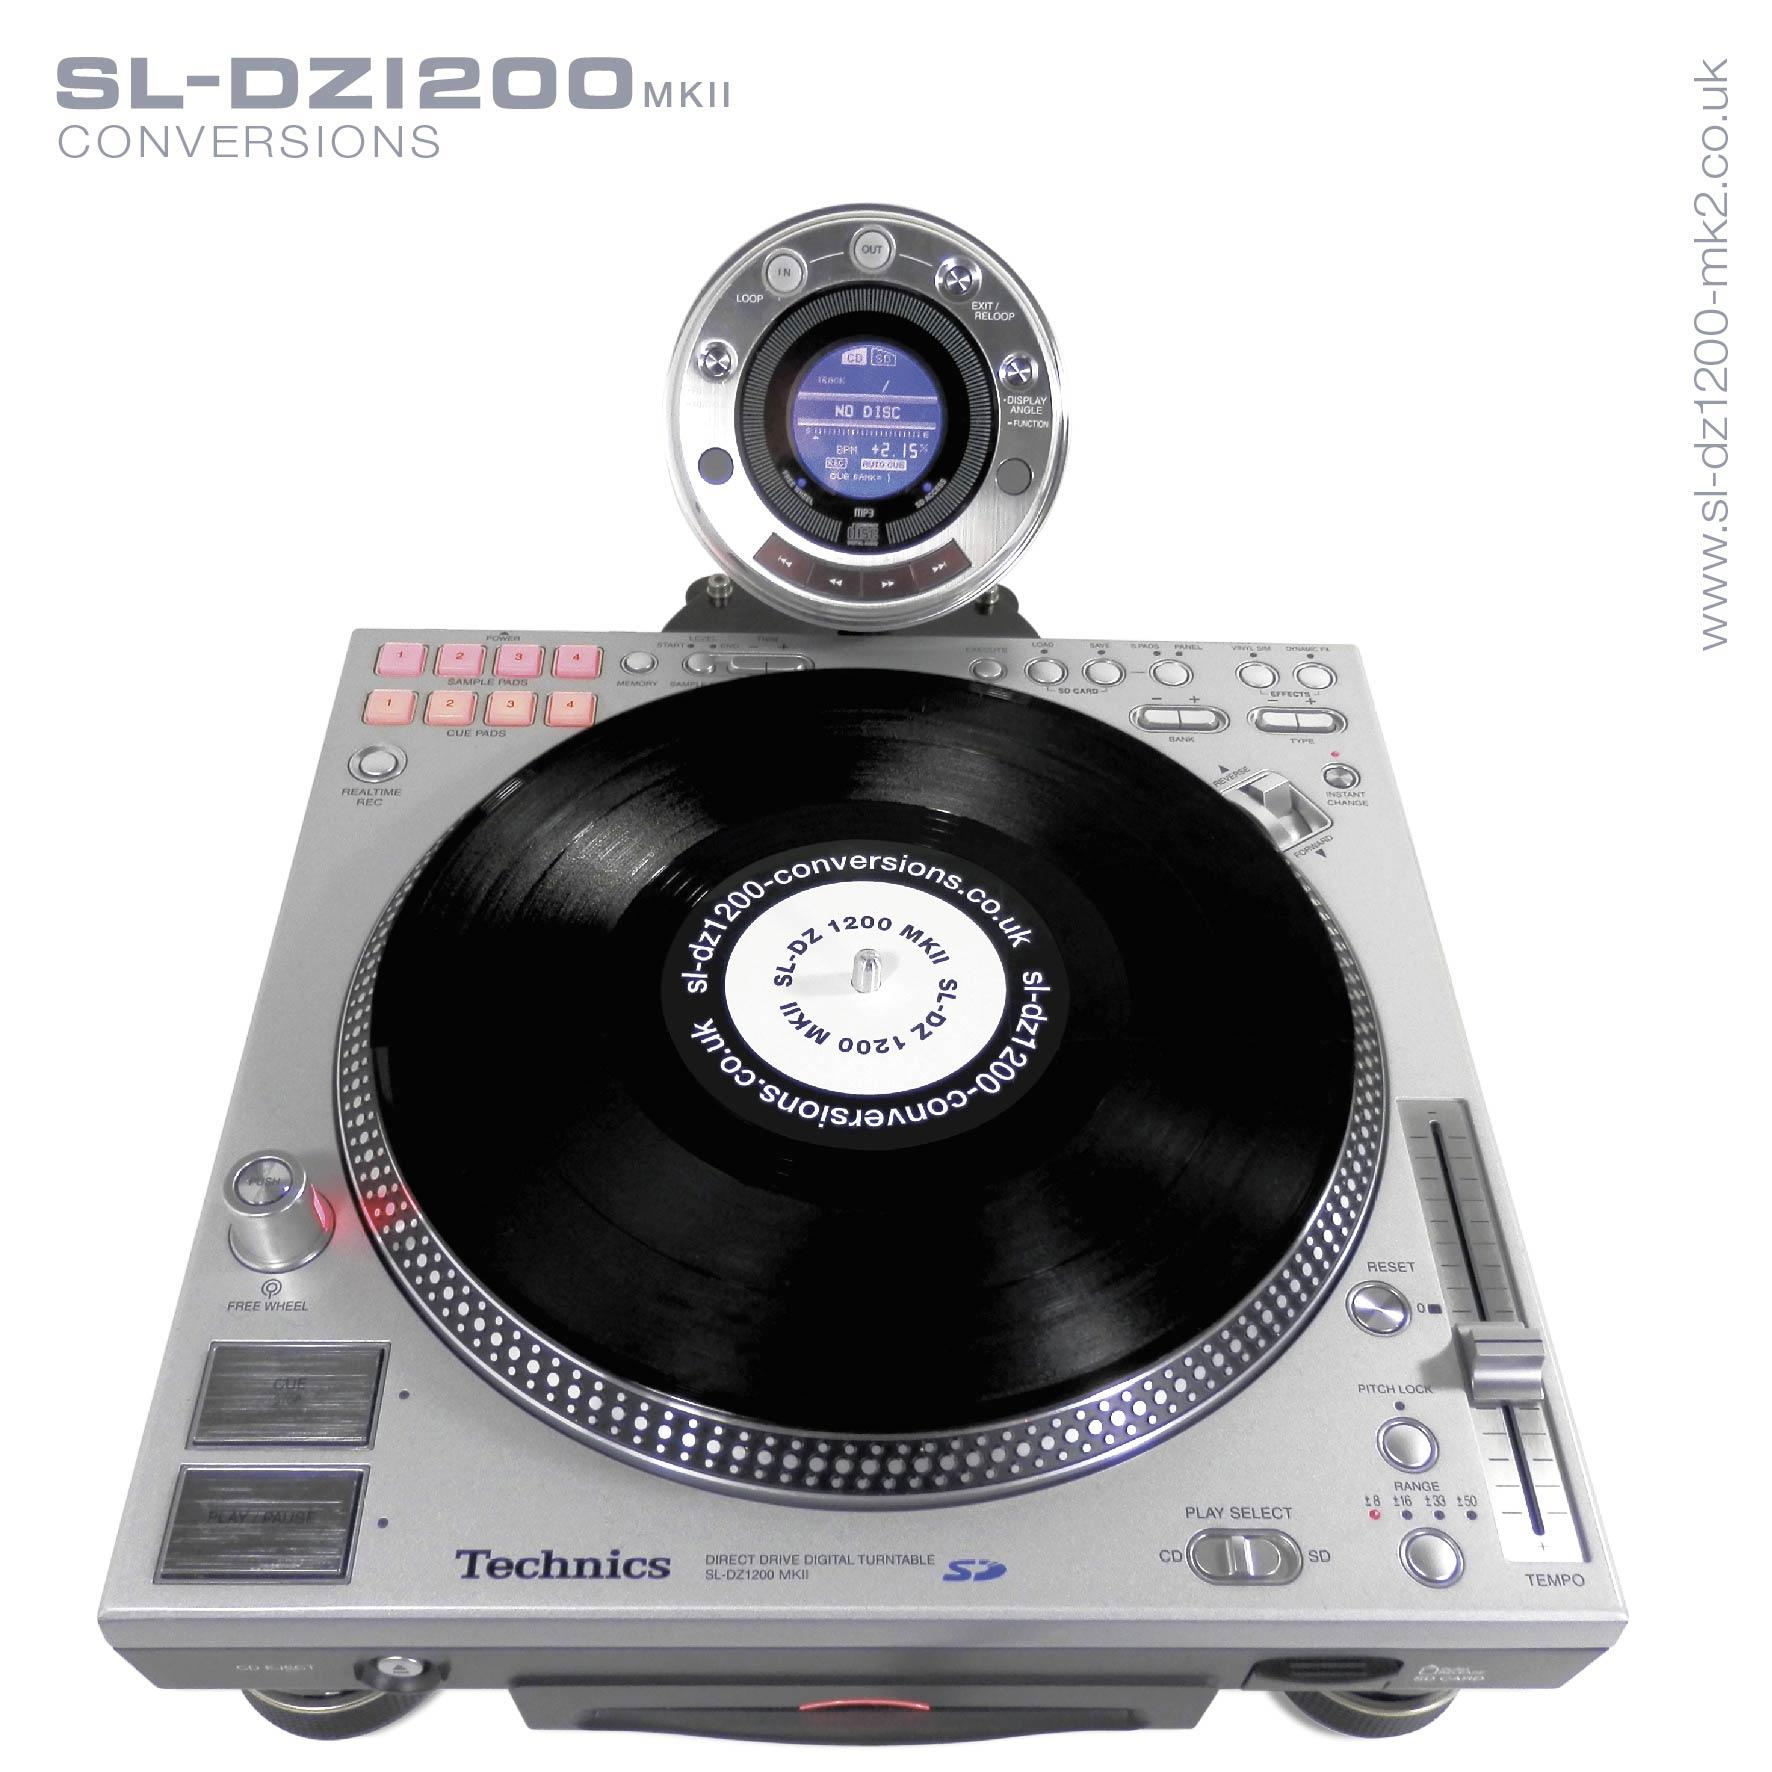 a compact motorized dj controller purely for scratching